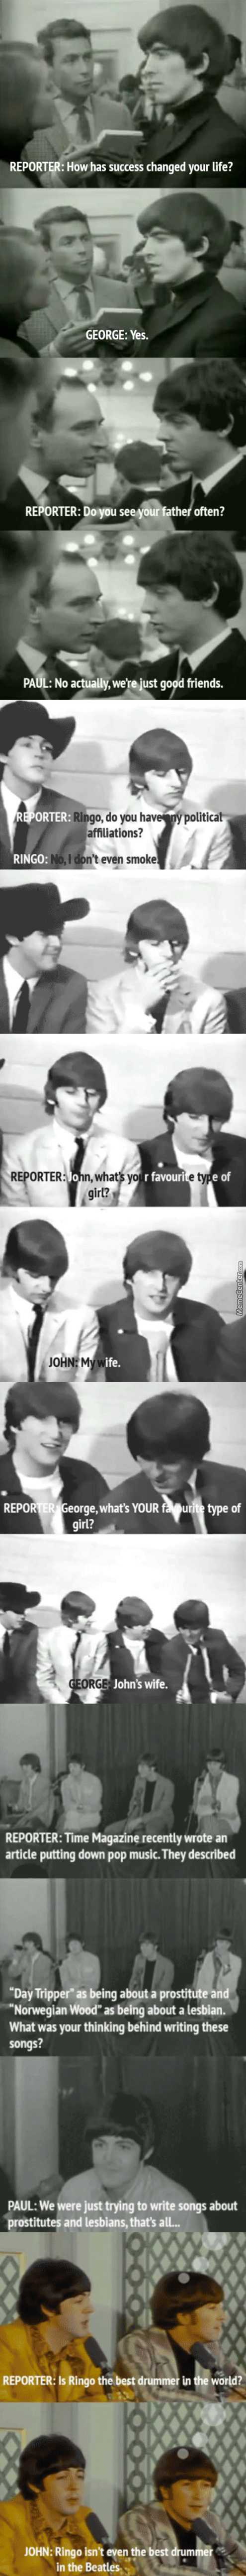 Those Silly Beatle Lads